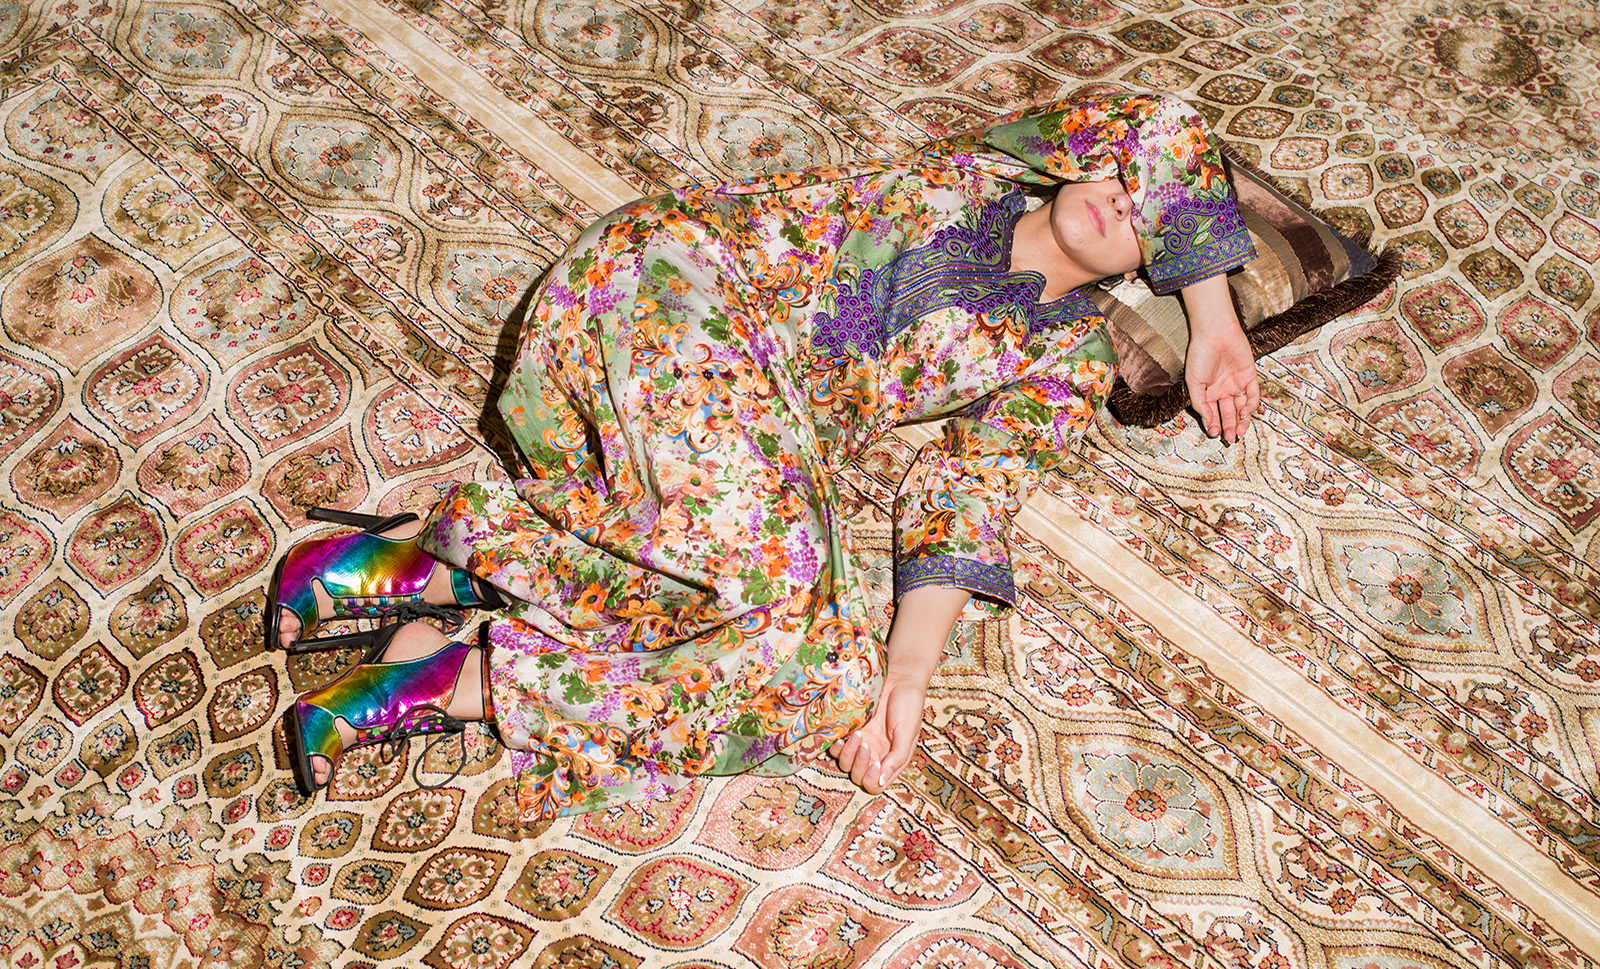 A woman in a floral print lays across a patterned rug, covering her face.